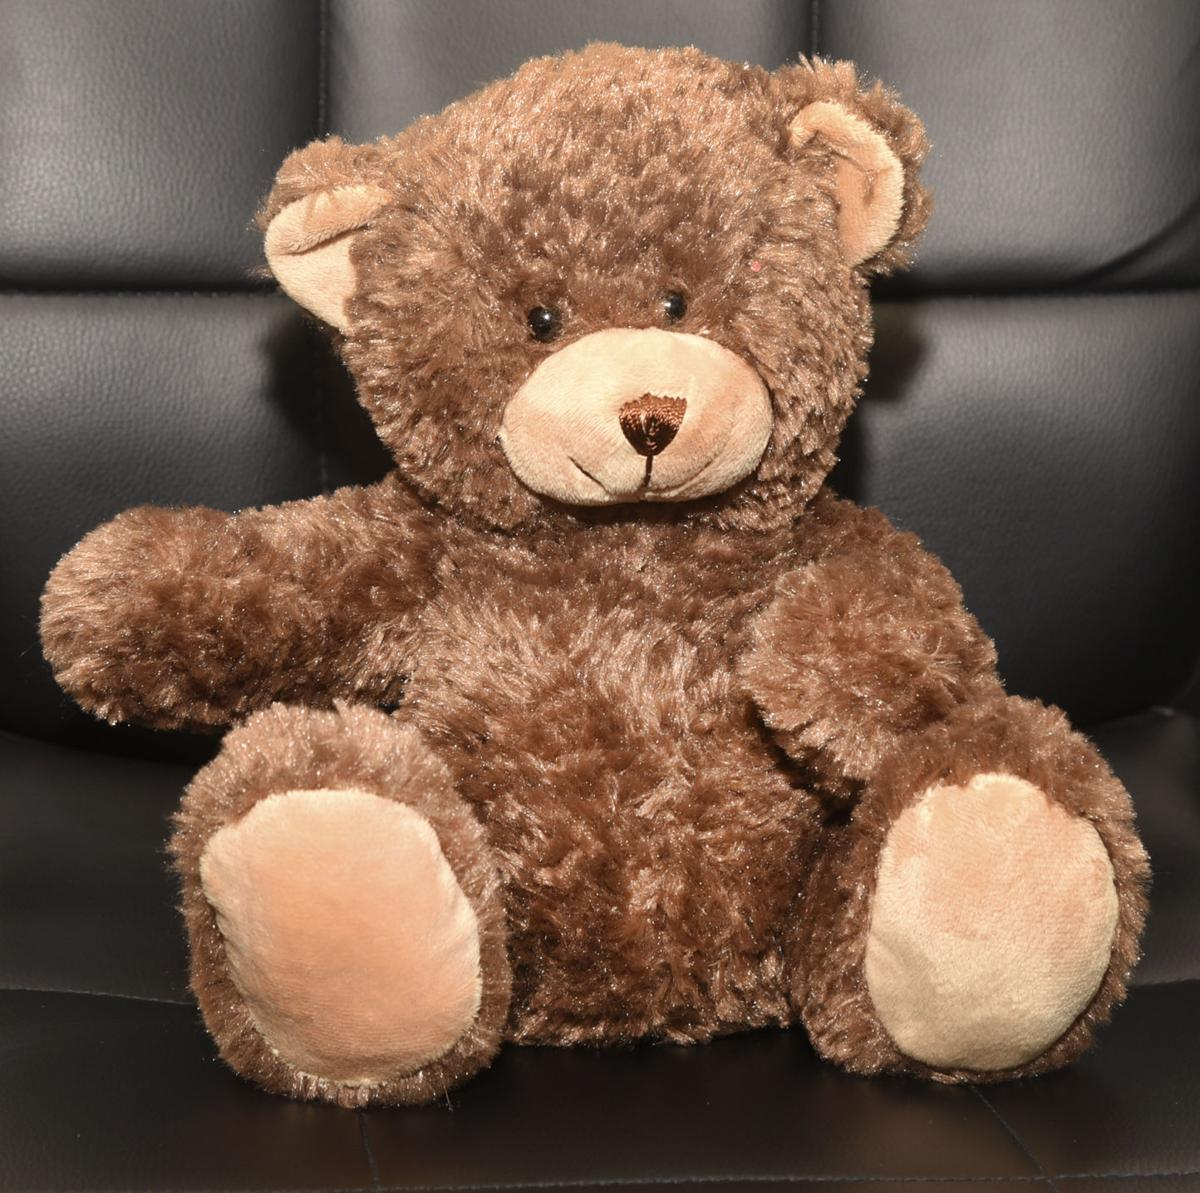 011117_teddy bear 2